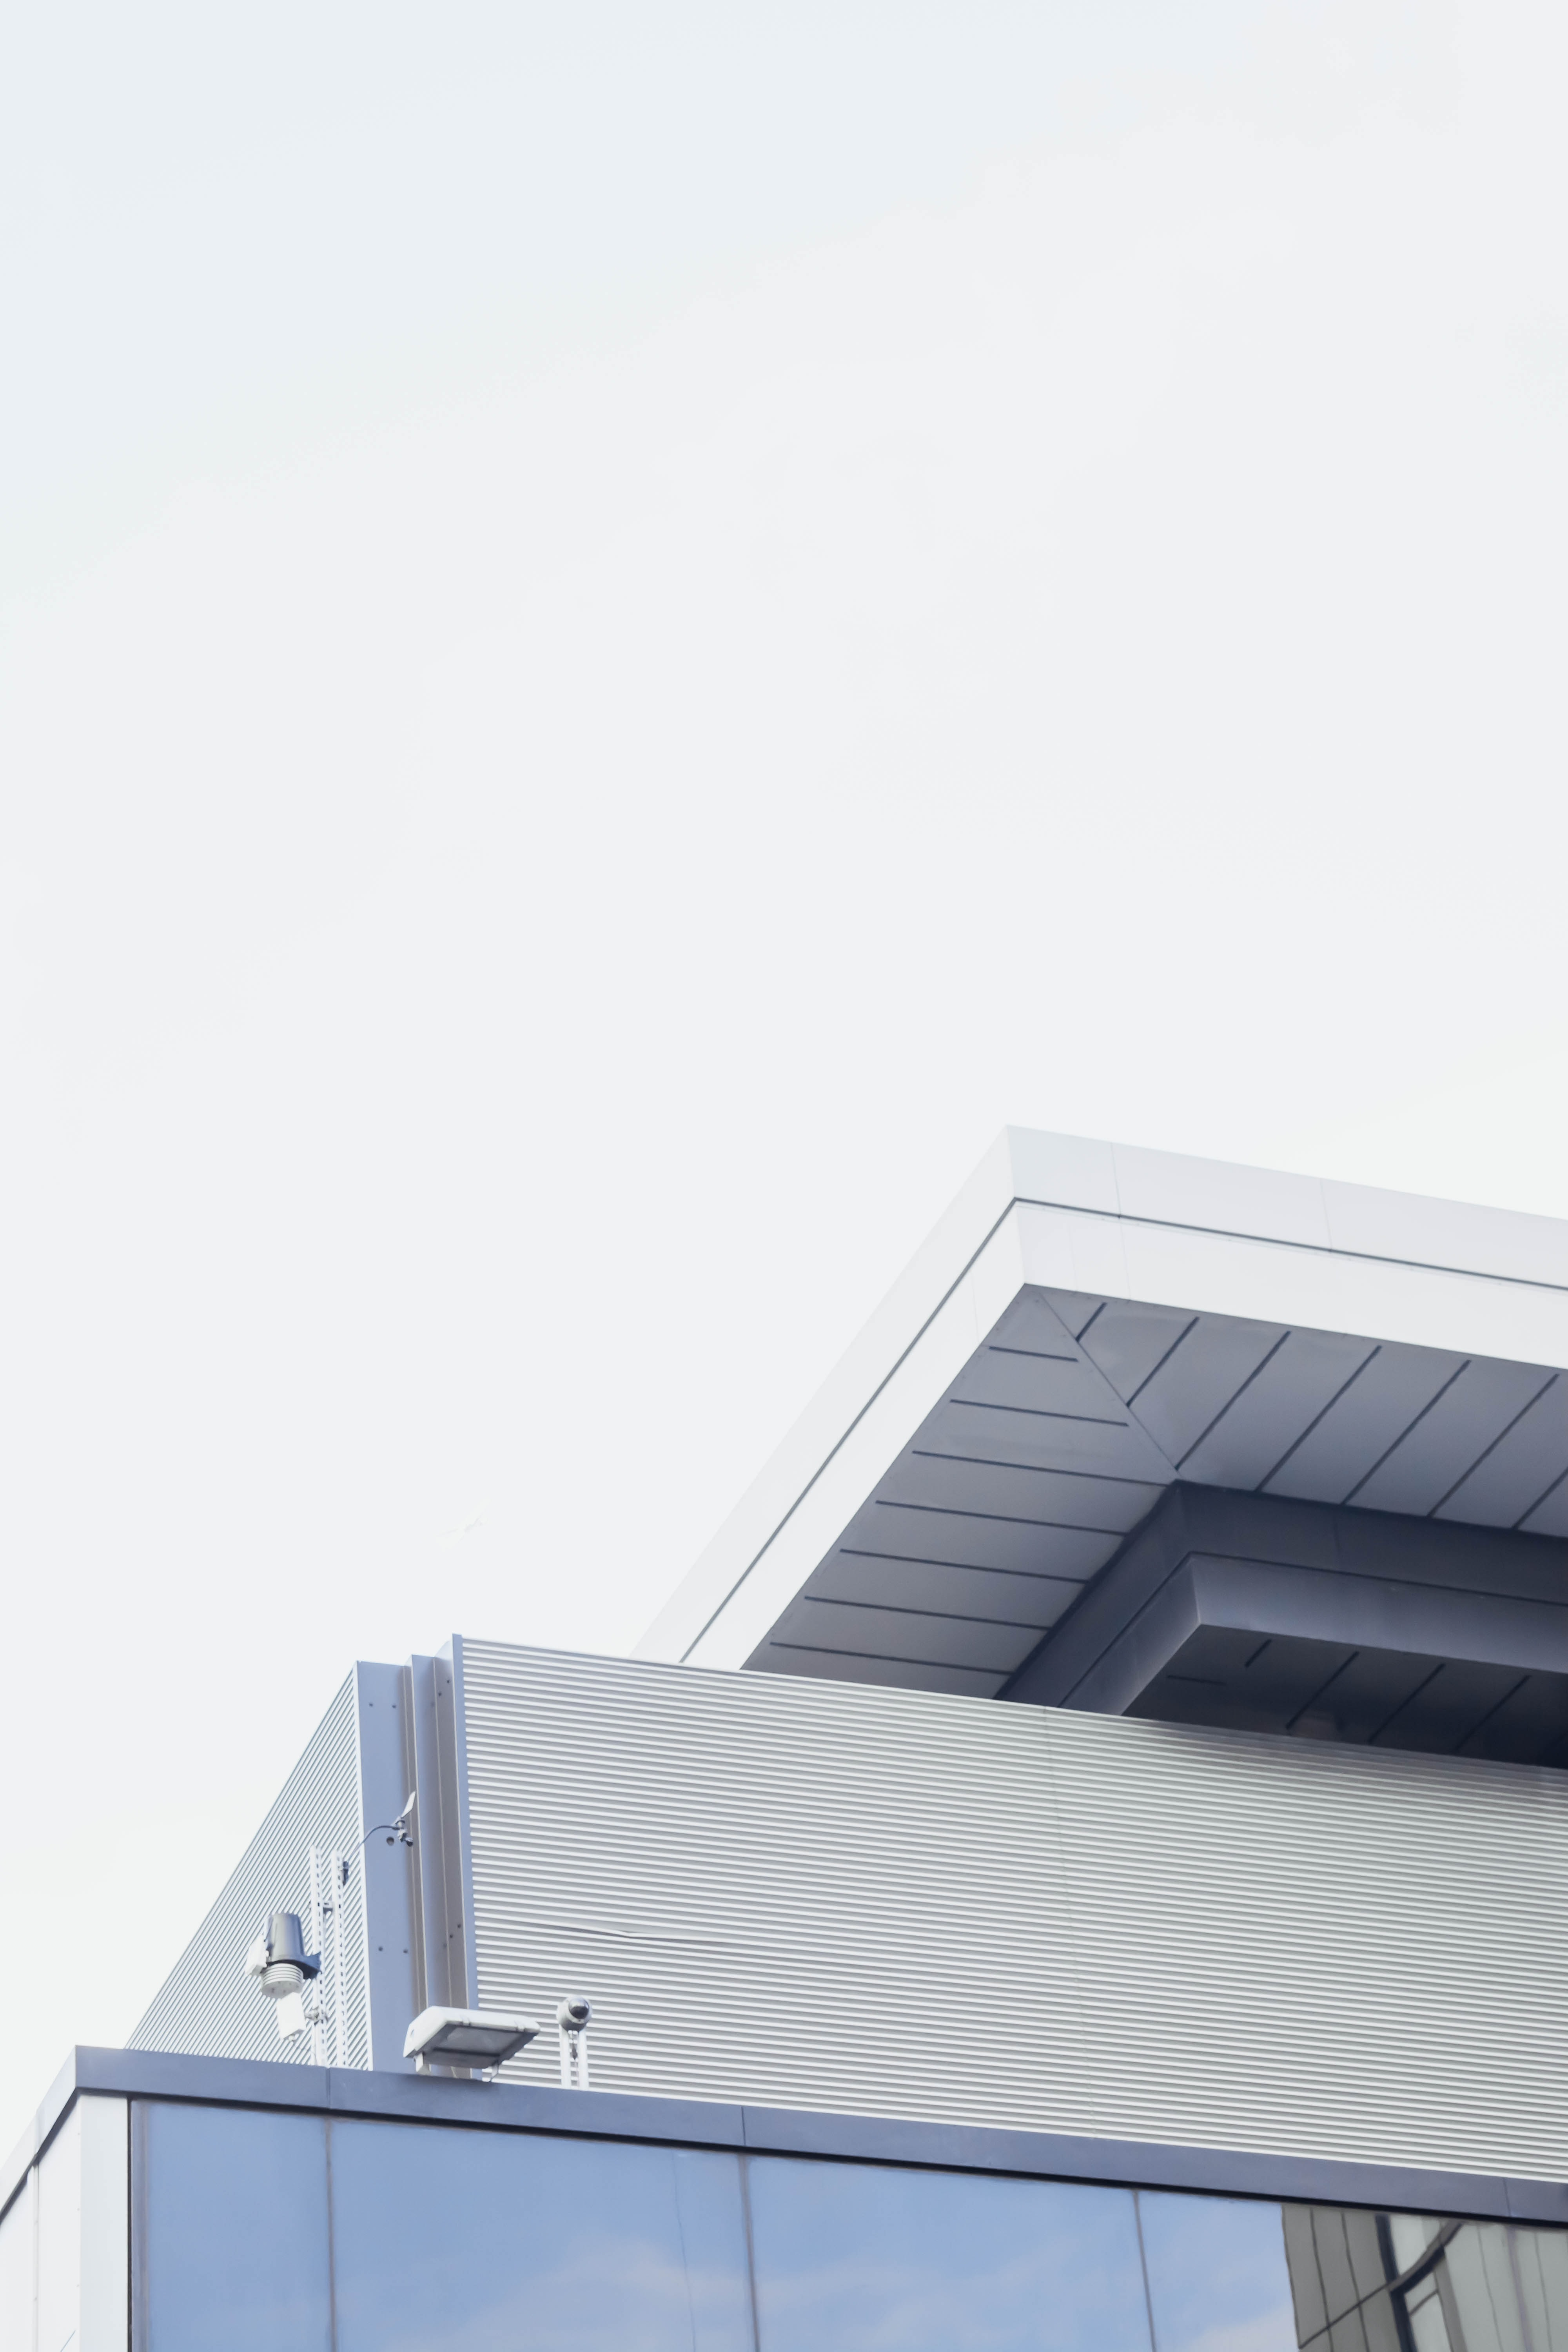 The edge of a modern building with a white roof in London